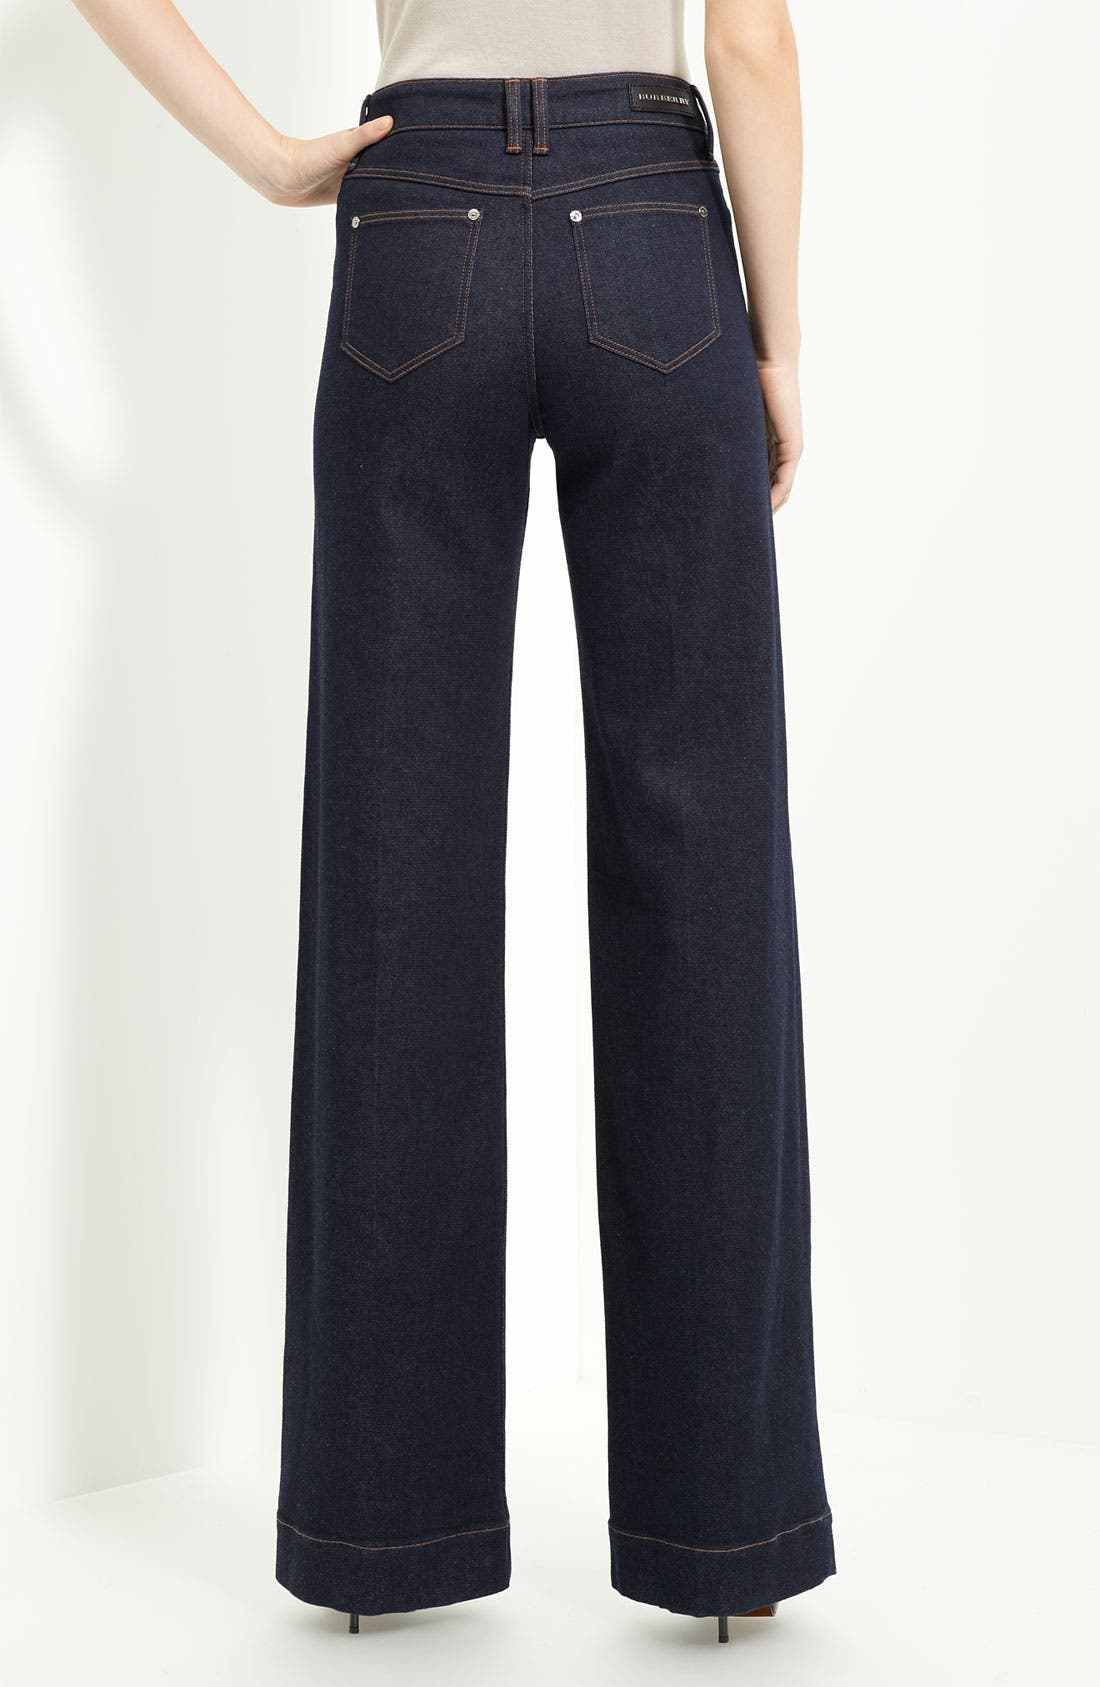 Main Image - Burberry London Wide Leg Stretch Jeans (New London Rinse)